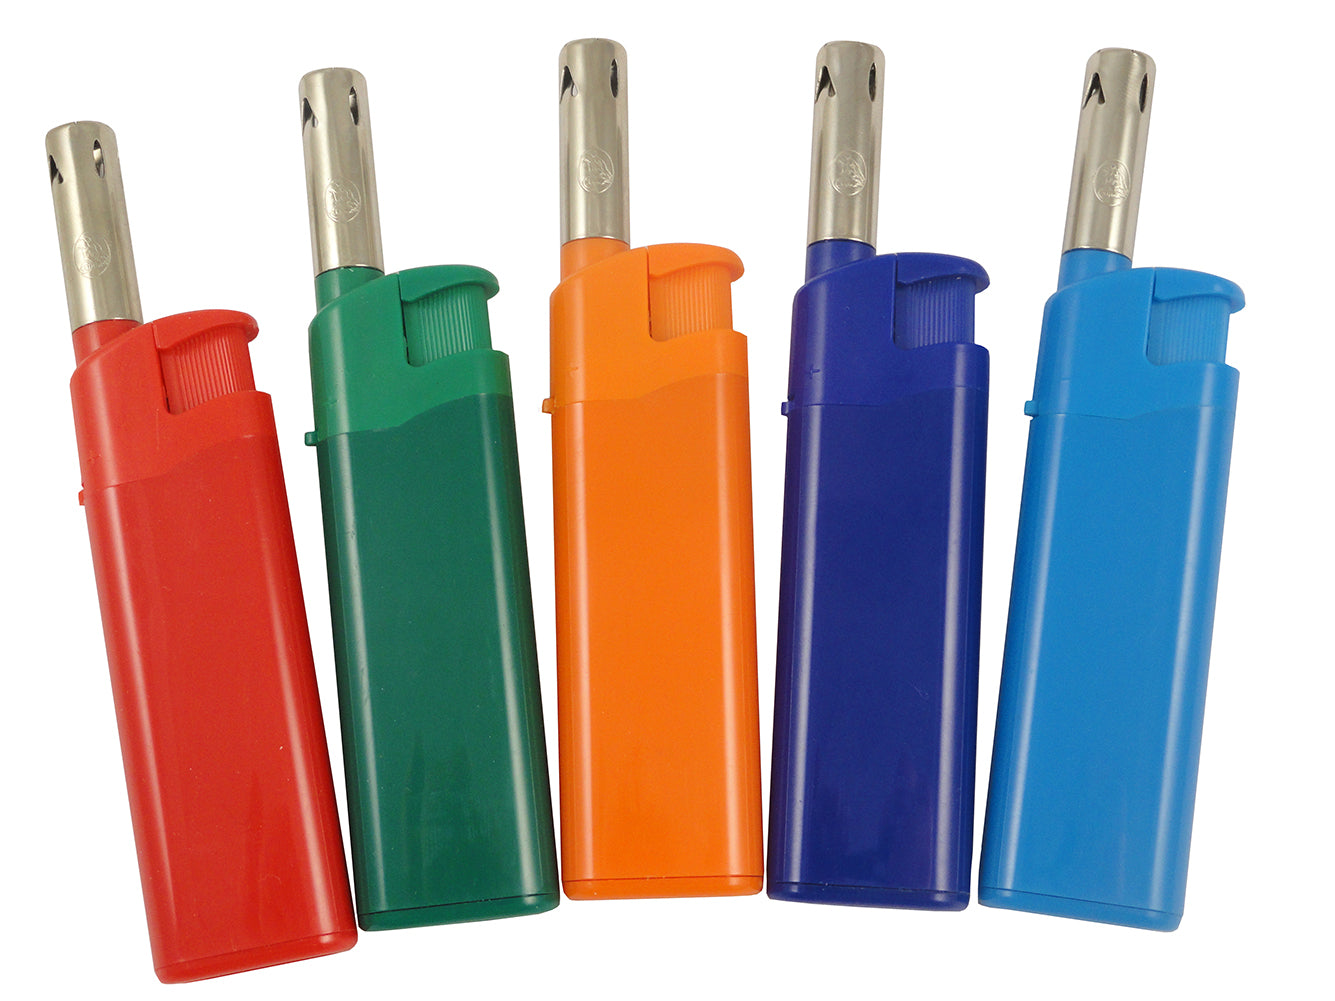 No More Burning Your Fingers Refillable Pipe Lighter (Assorted)